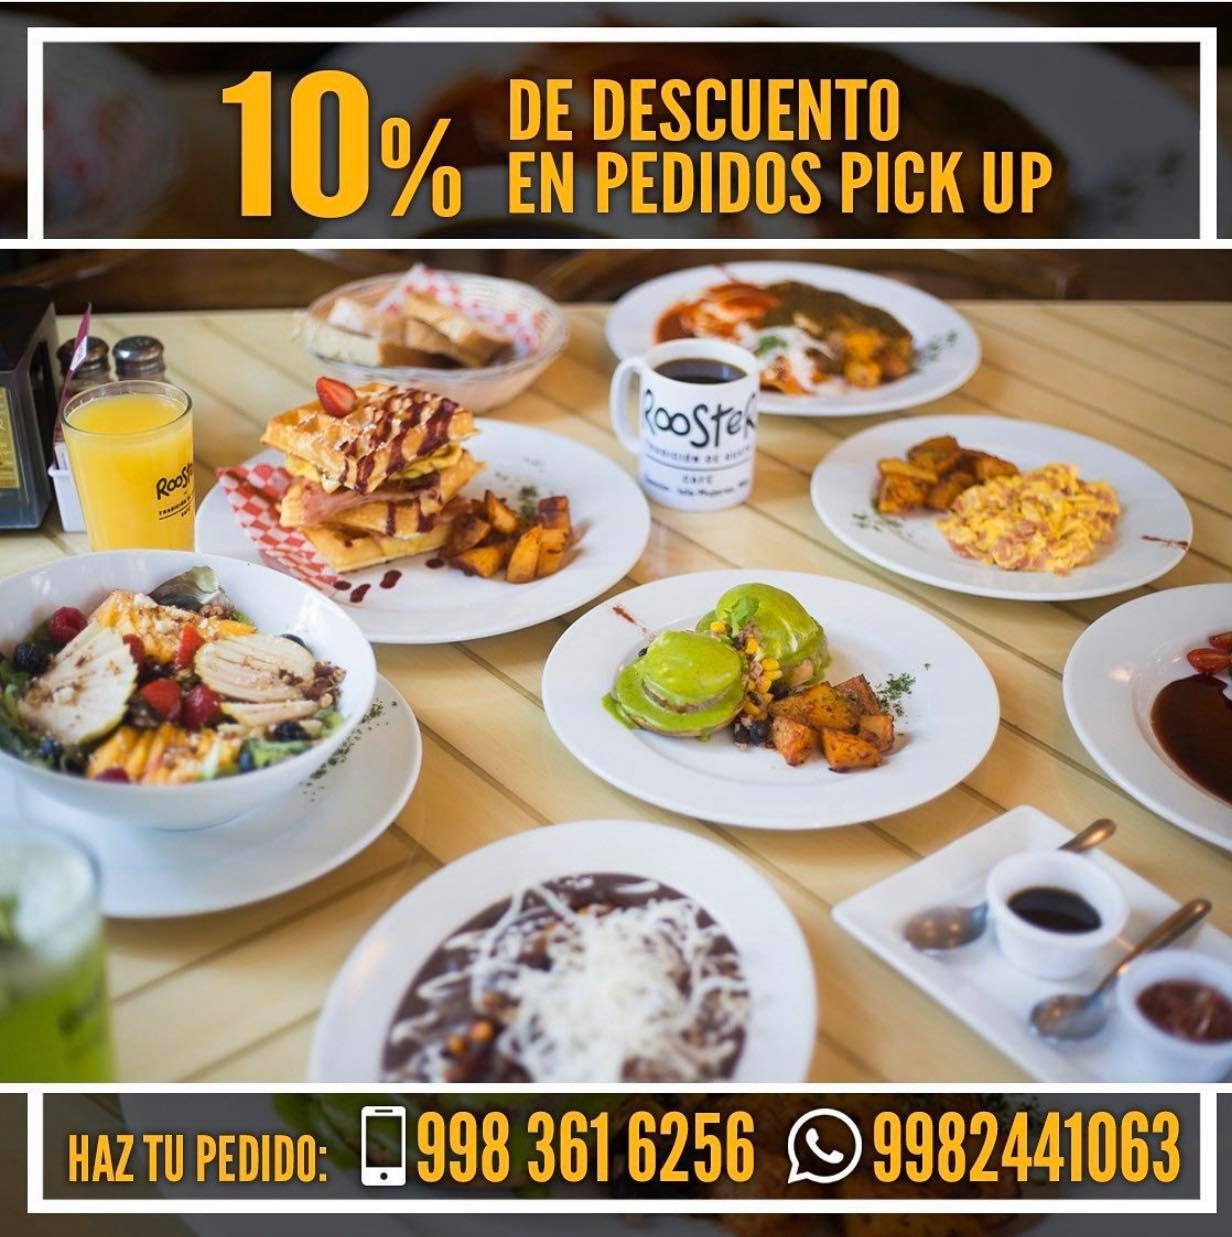 rooster pedidos